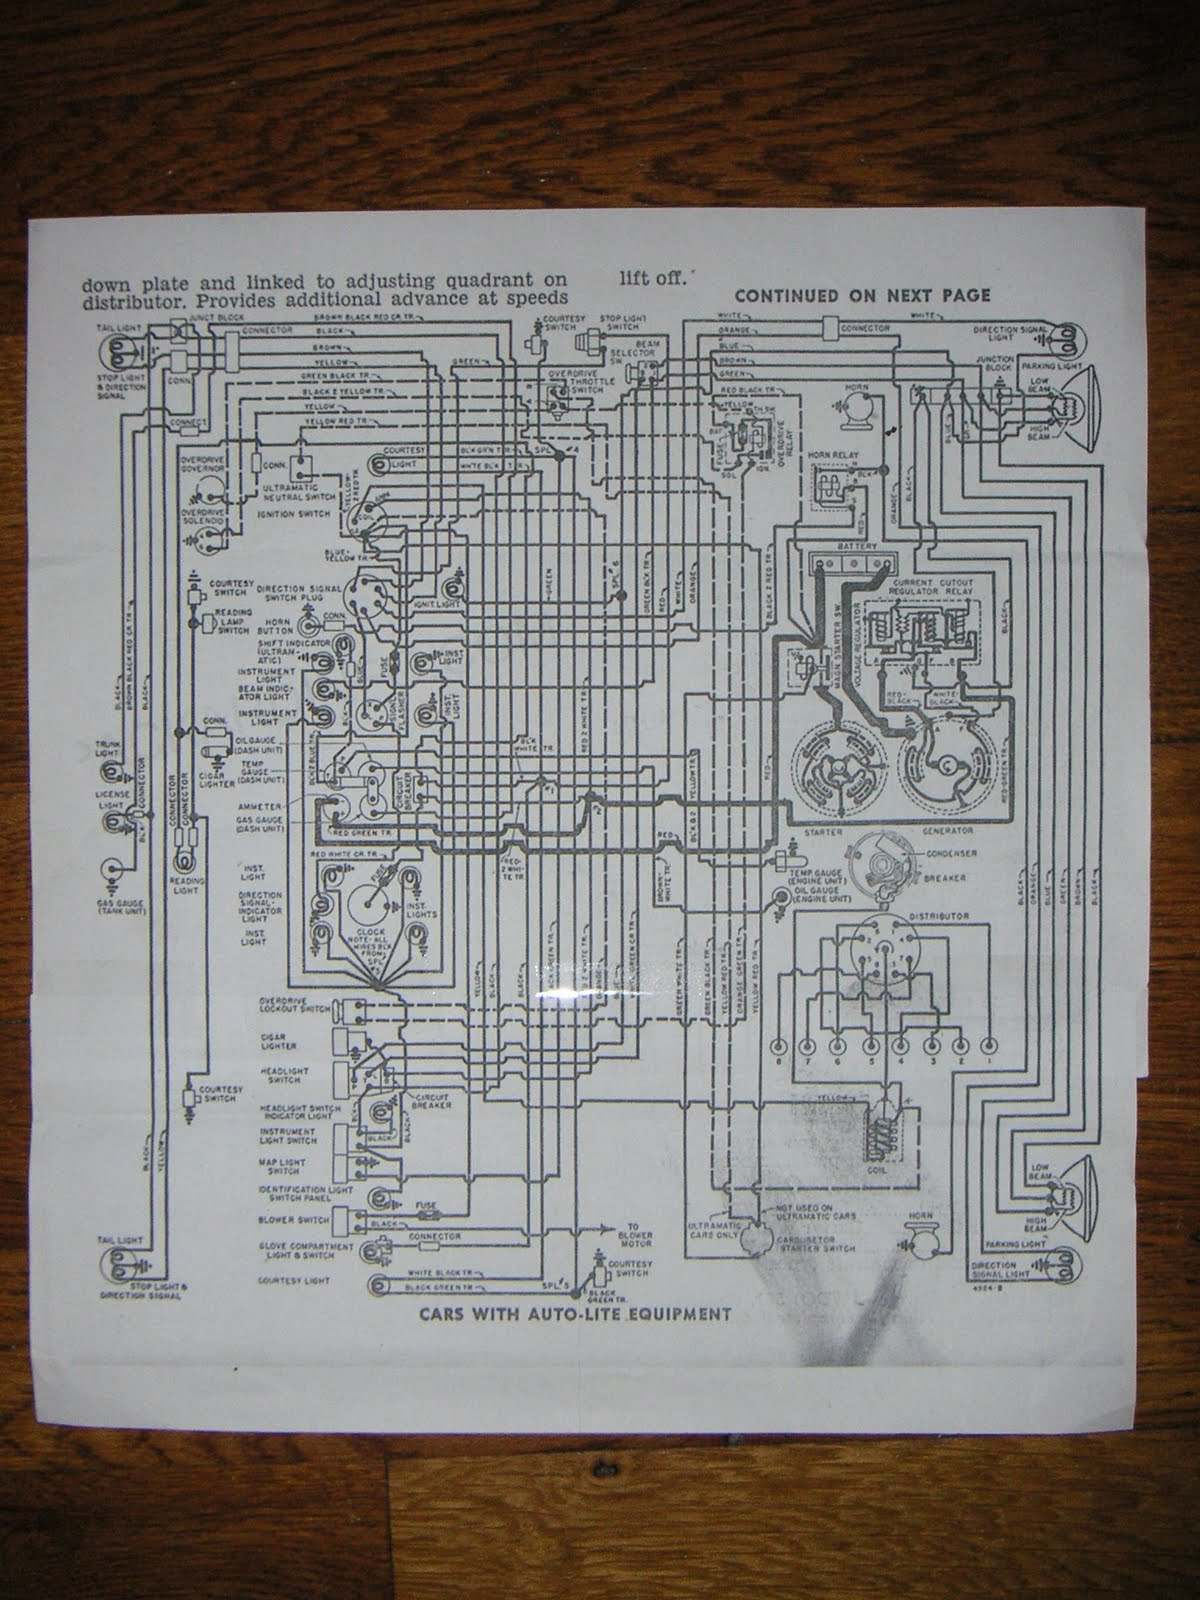 PICT0103a 1942 oldsmobile wiring diagram 1956 oldsmobile wiring diagram 1948 cadillac wiring diagram at gsmportal.co